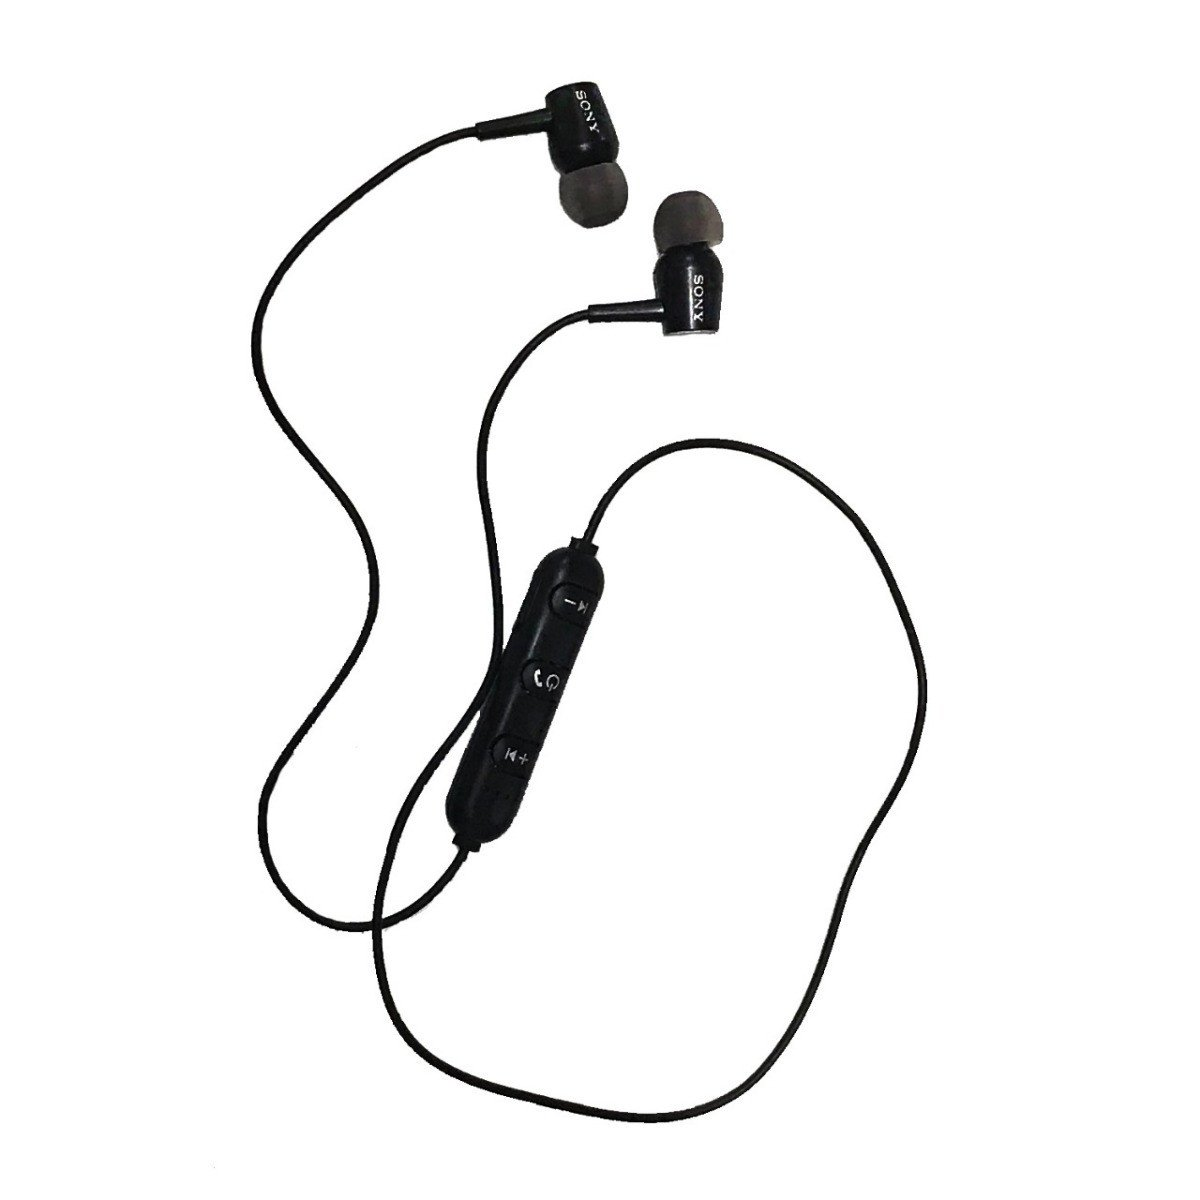 Bluetooth Para Manos Libres Manos Libres Sony Ex Mh 750 Bluetooth Wireless Mj 6688 Negros